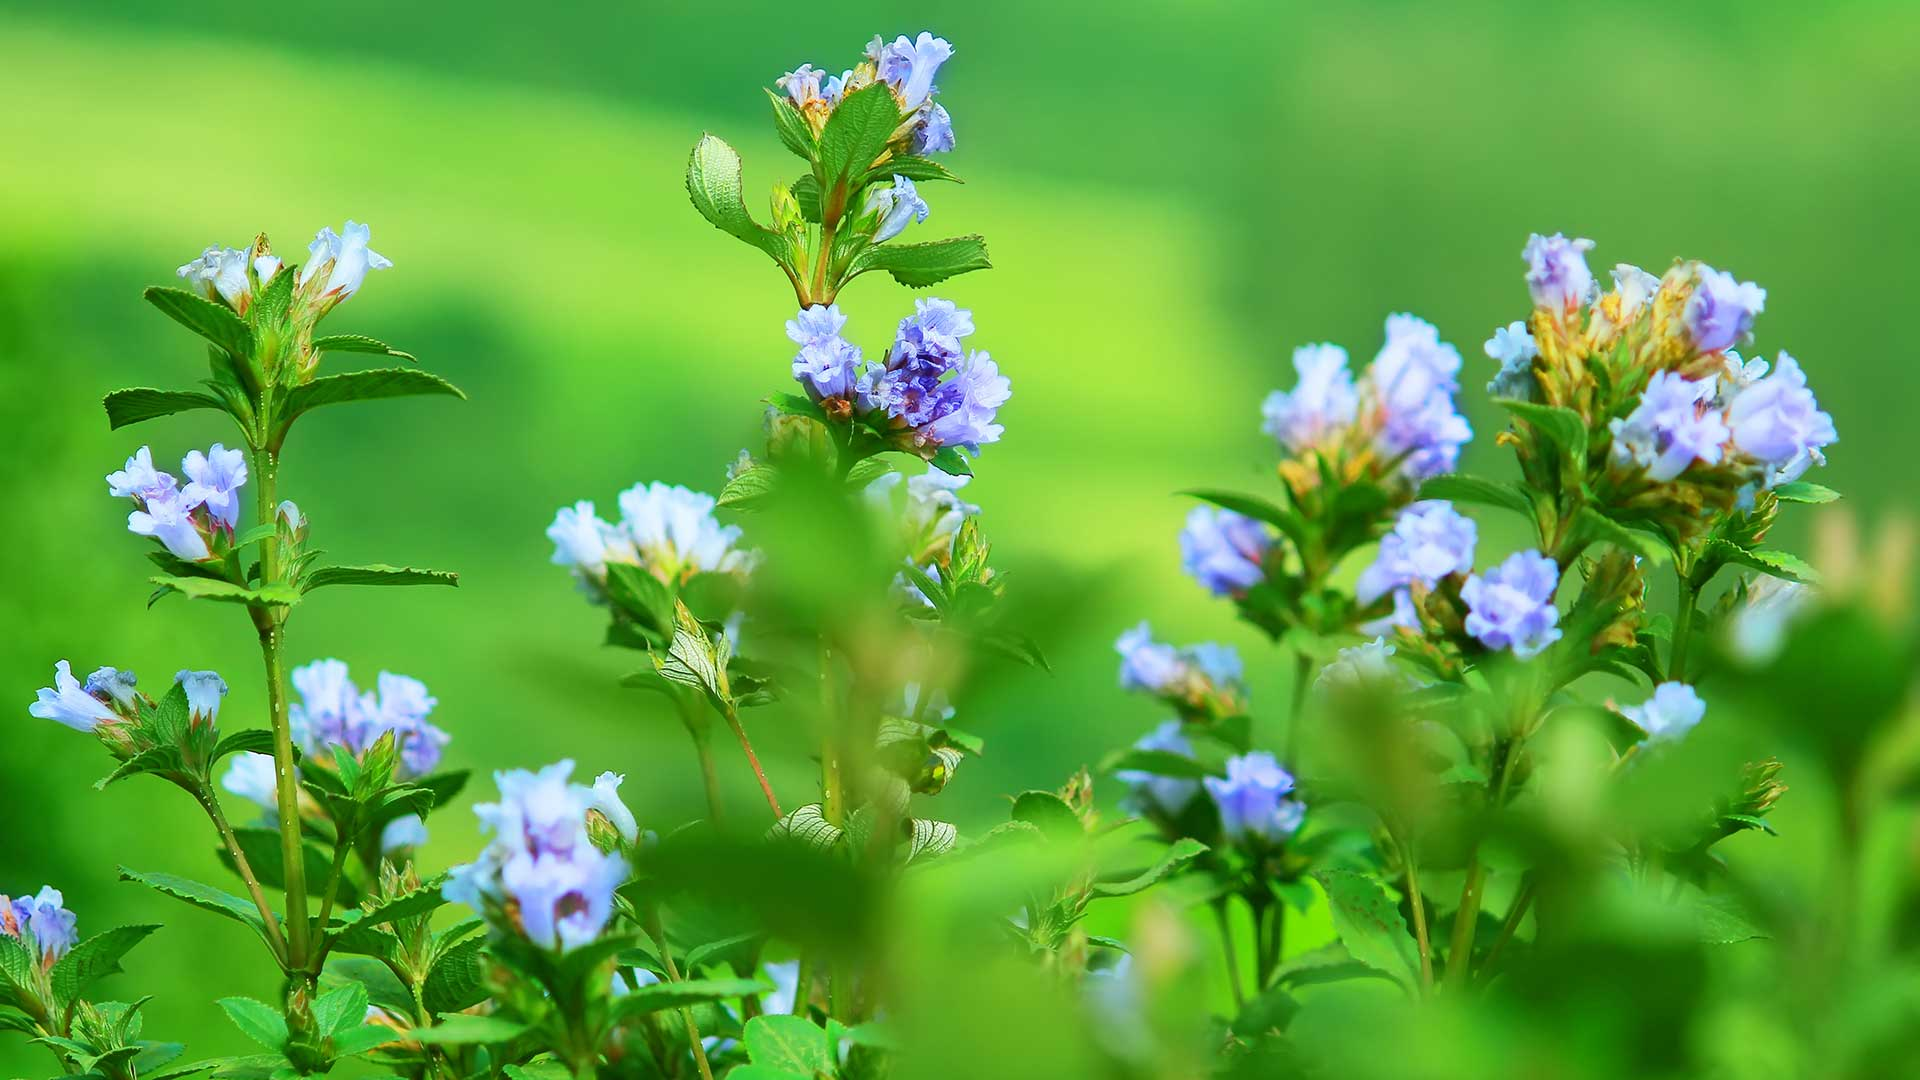 Neelakurinji-Shrub-and-Flowers-at-Eravikulam National Park-Munnar